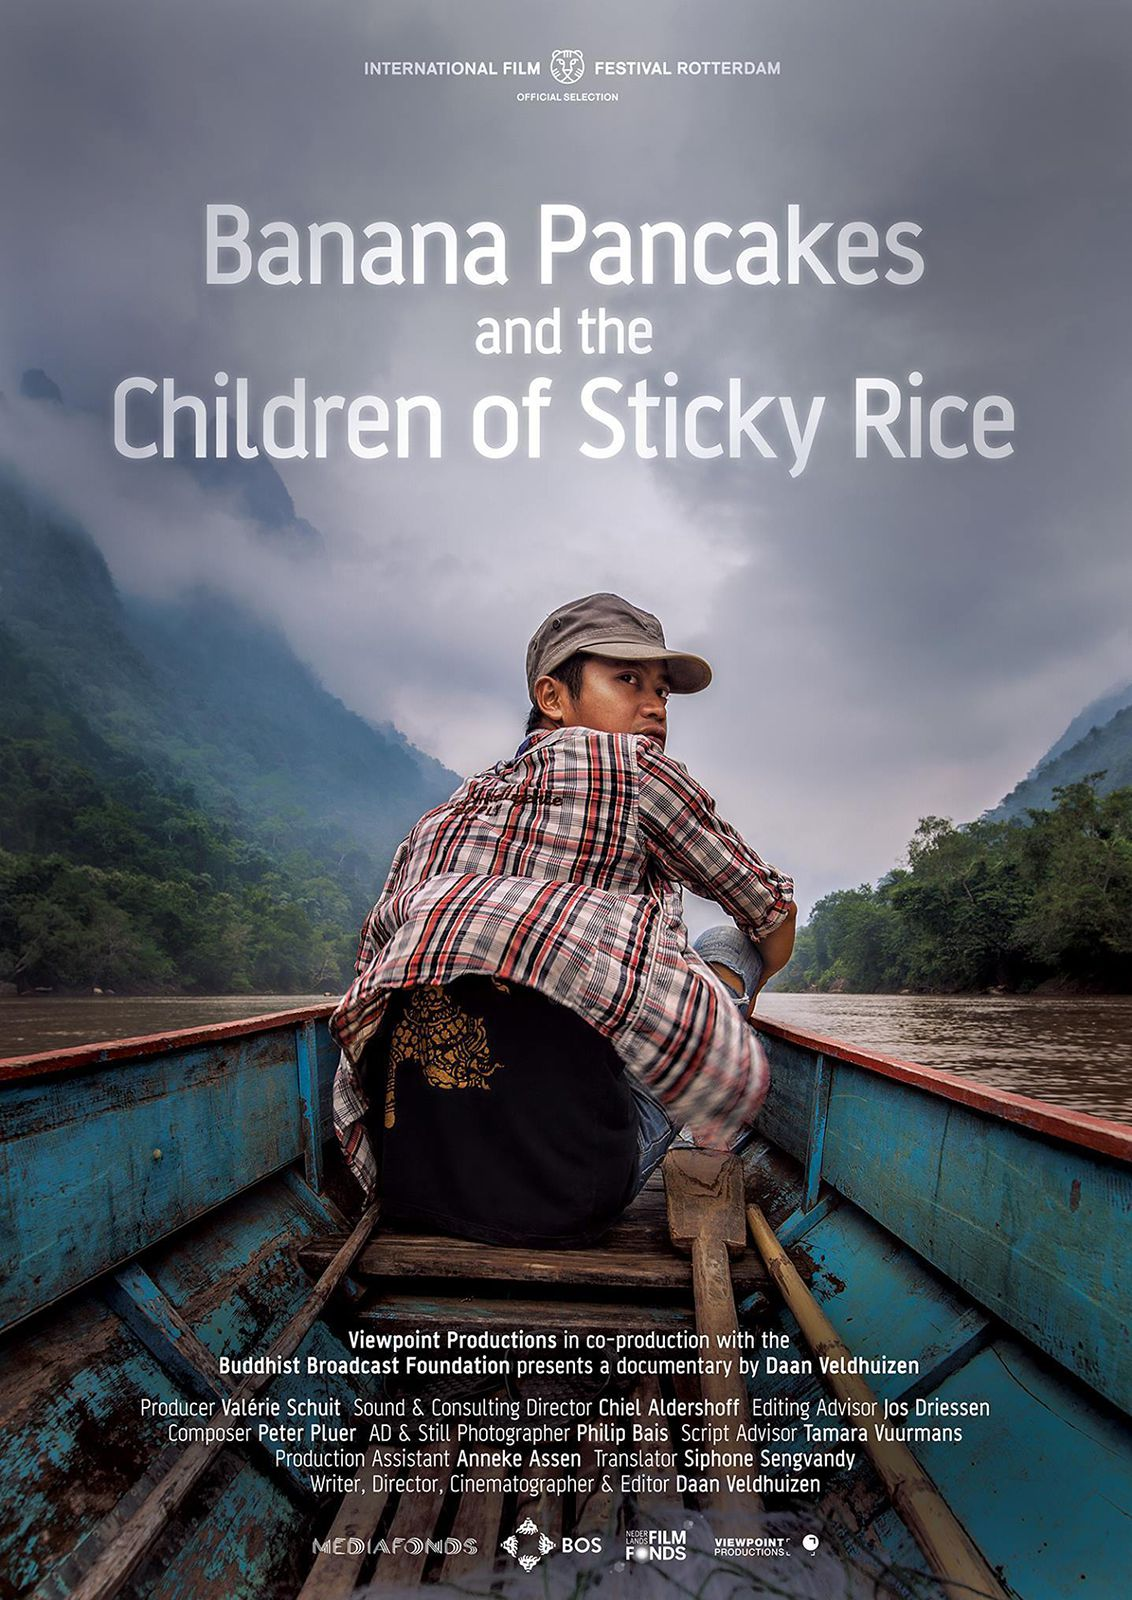 Banana Pancakes and the Children of Sticky Rice - Documentaire (2015)